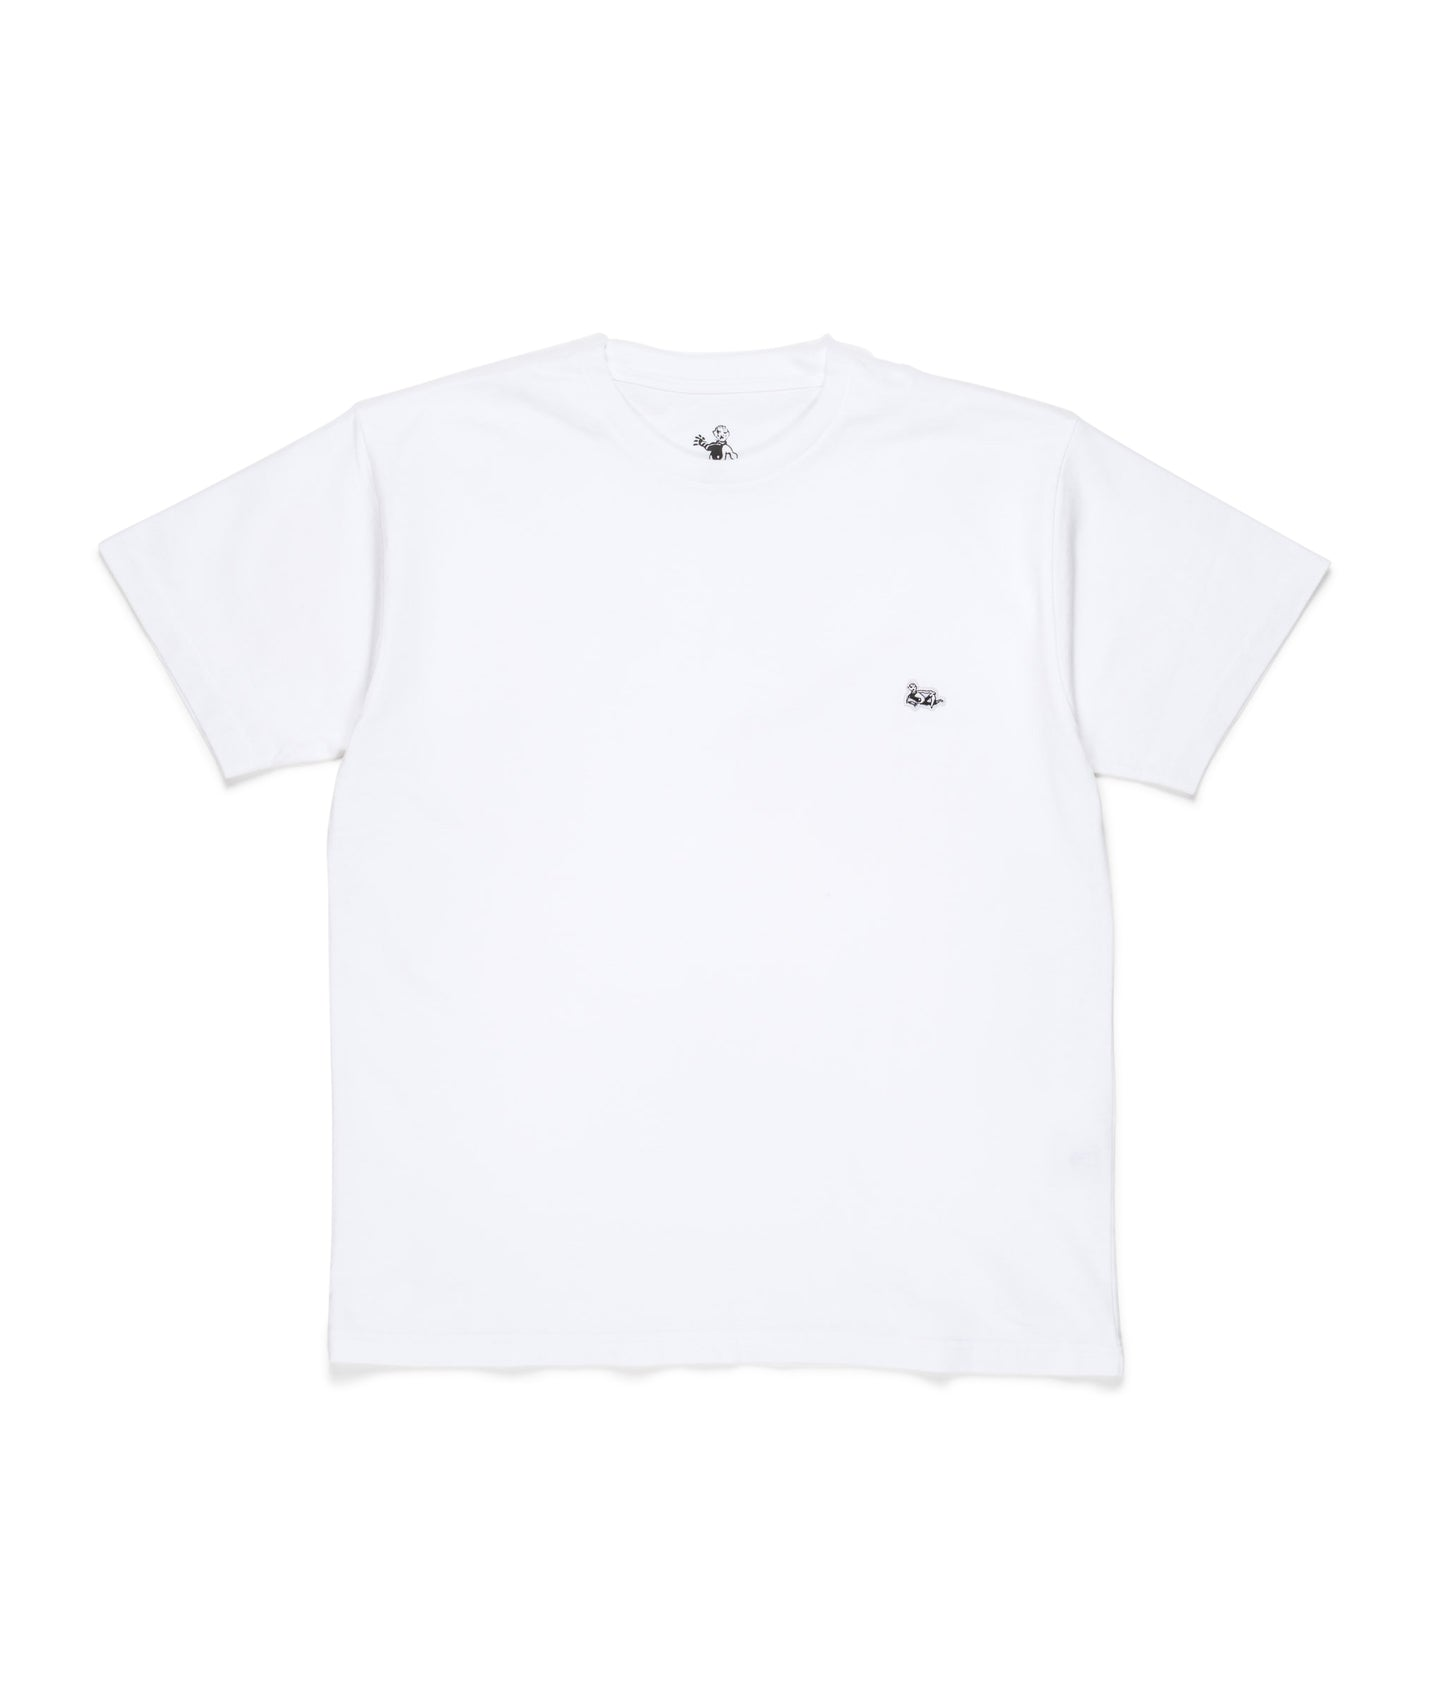 Dancer Patch Lie Tee White